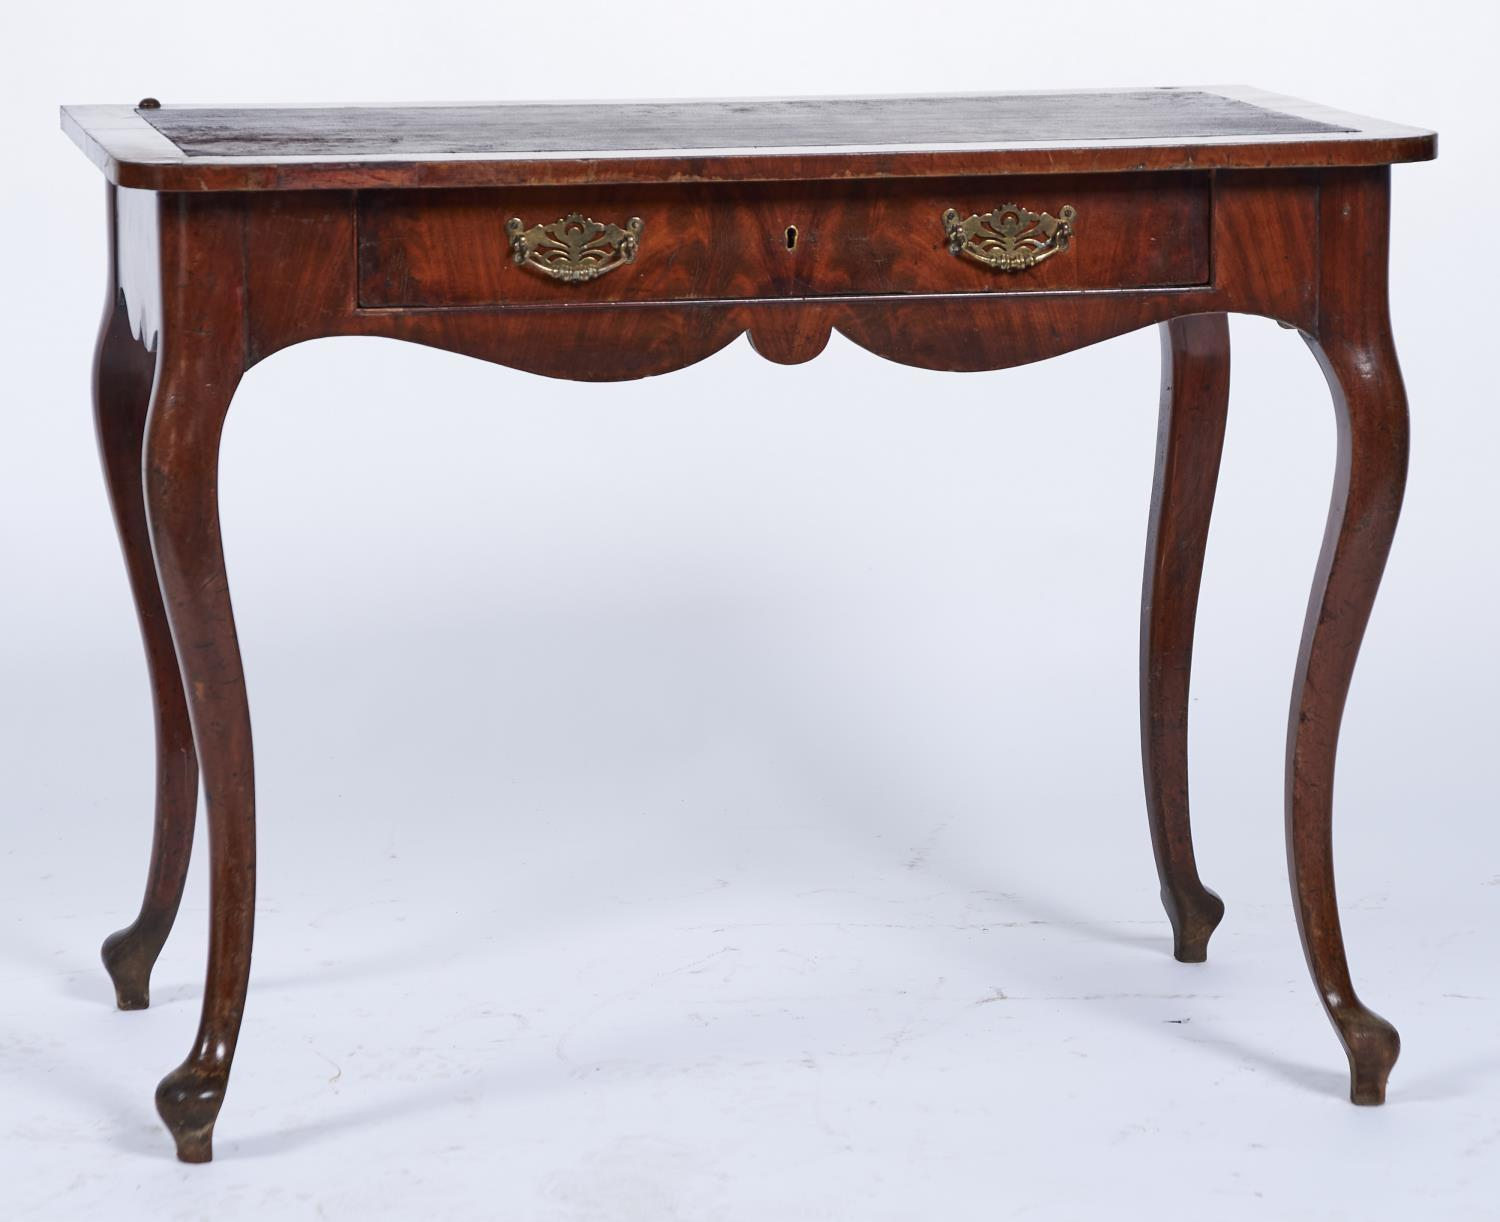 A CONTINENTAL MAHOGANY VENEERED WRITING TABLE, THE RECTANGULAR TOP WITH ROUNDED FRONT CORNERS, INSET